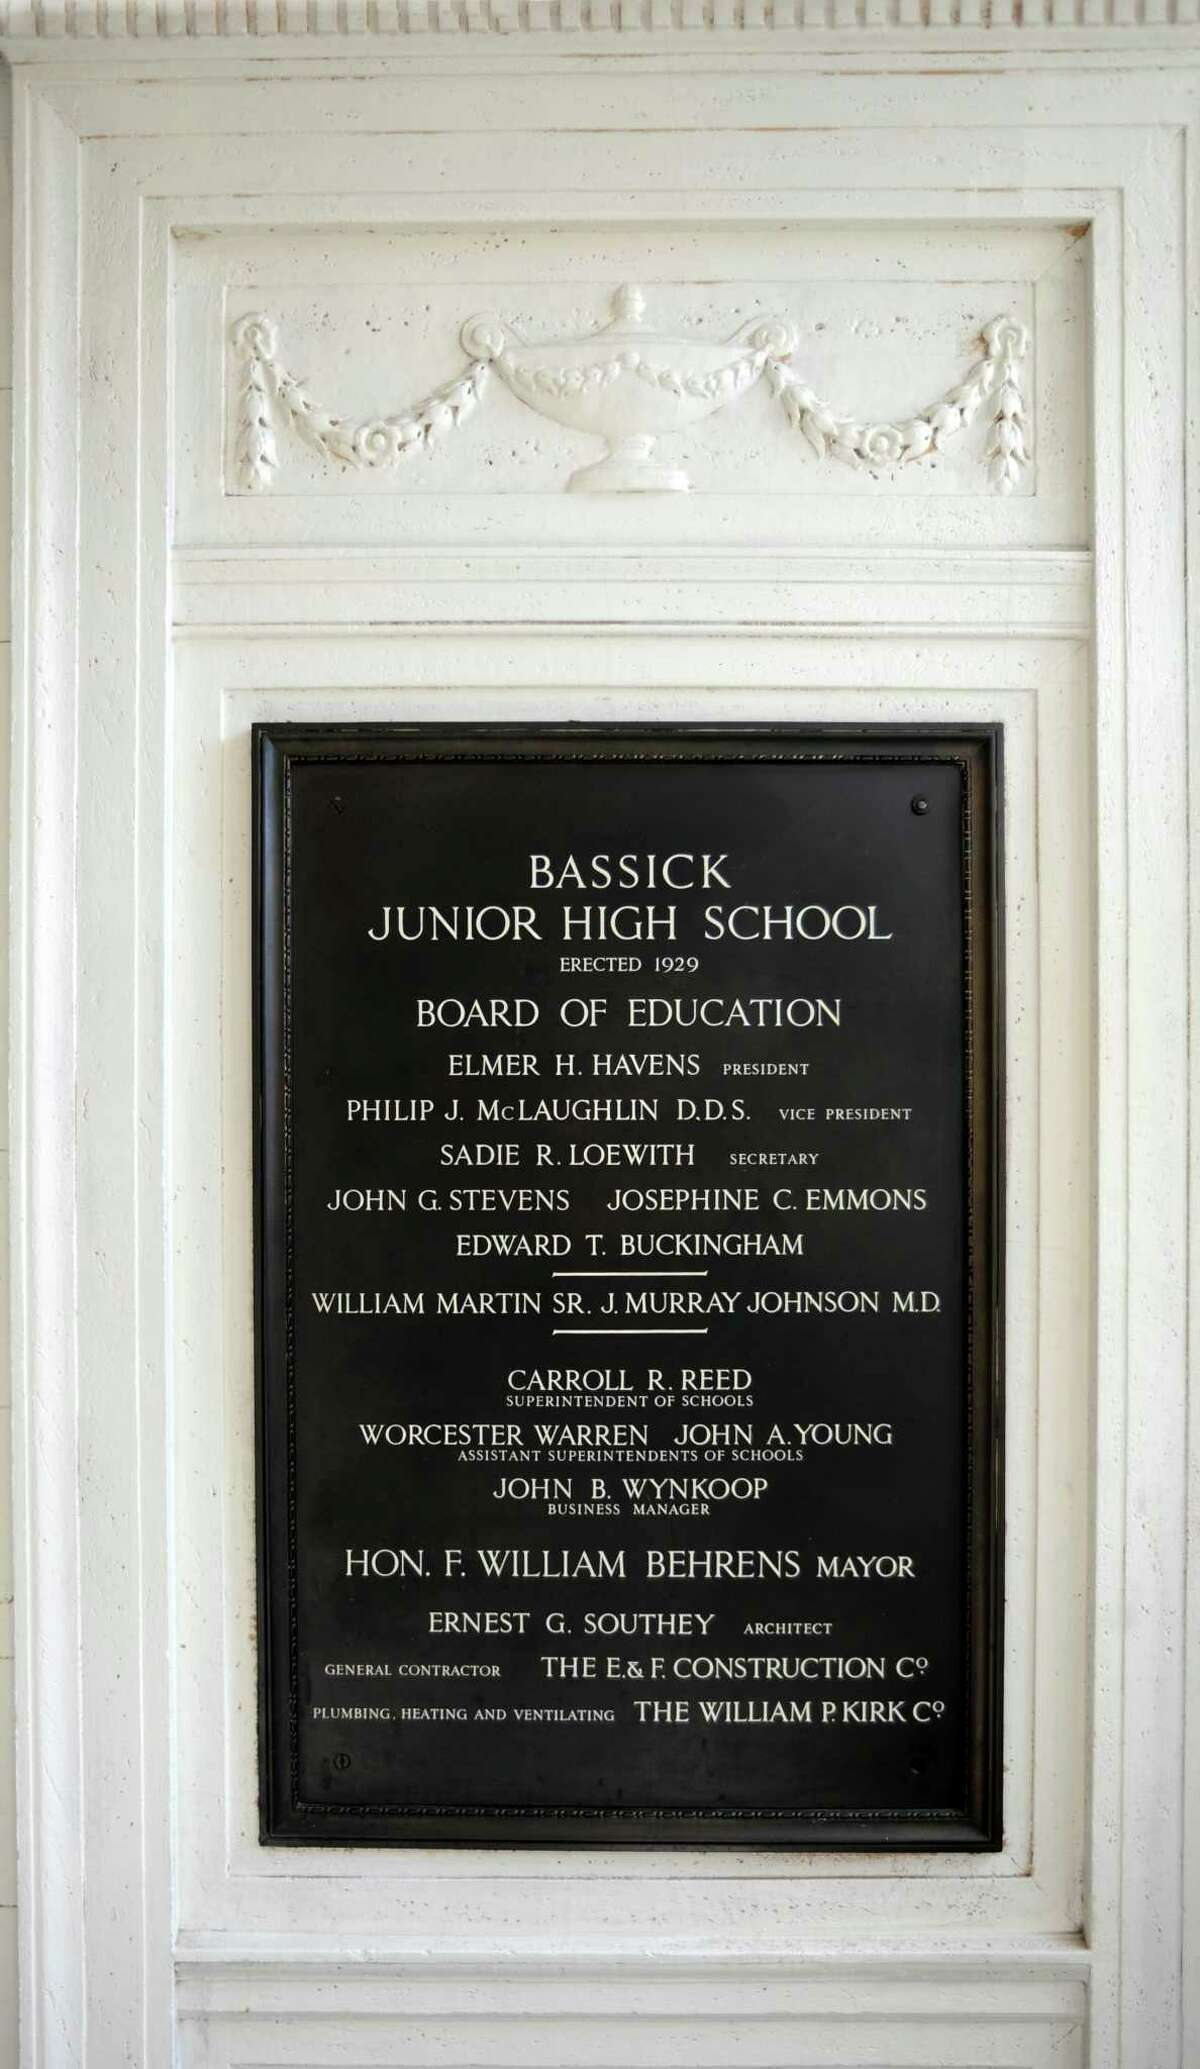 a plaque inside the entrance to Bassick High School in Bridgeport, Conn. on Thursday, August 24, 2017, lists the administrators whenthe building housed Bassick Junior High School, erected 1929.